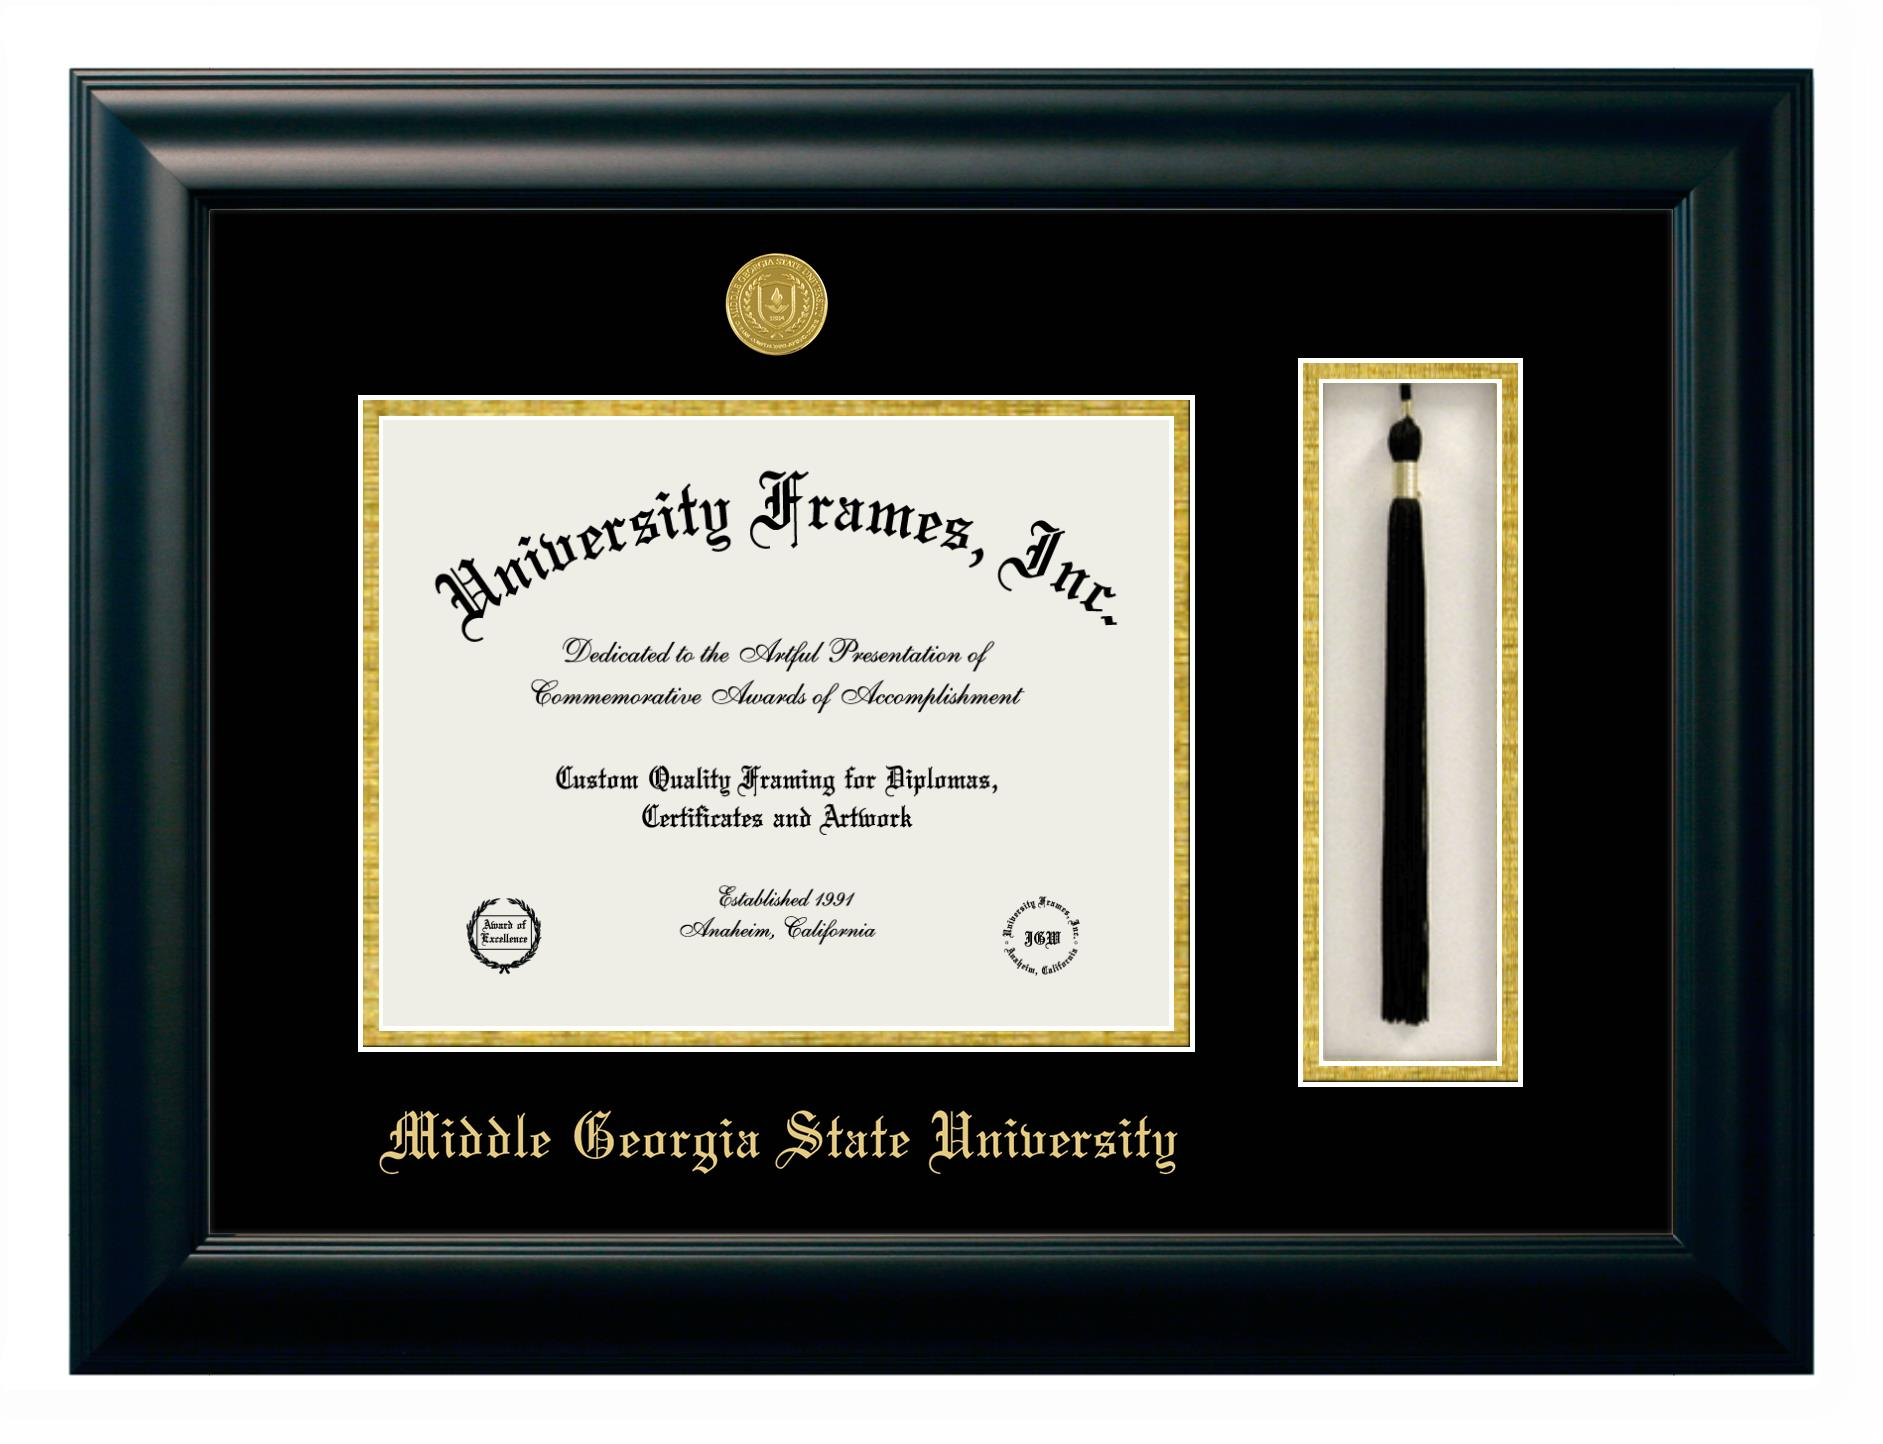 Middle Georgia State University Diploma Frame In Classic Mahogany With Gold Trim With Black Gold Mats